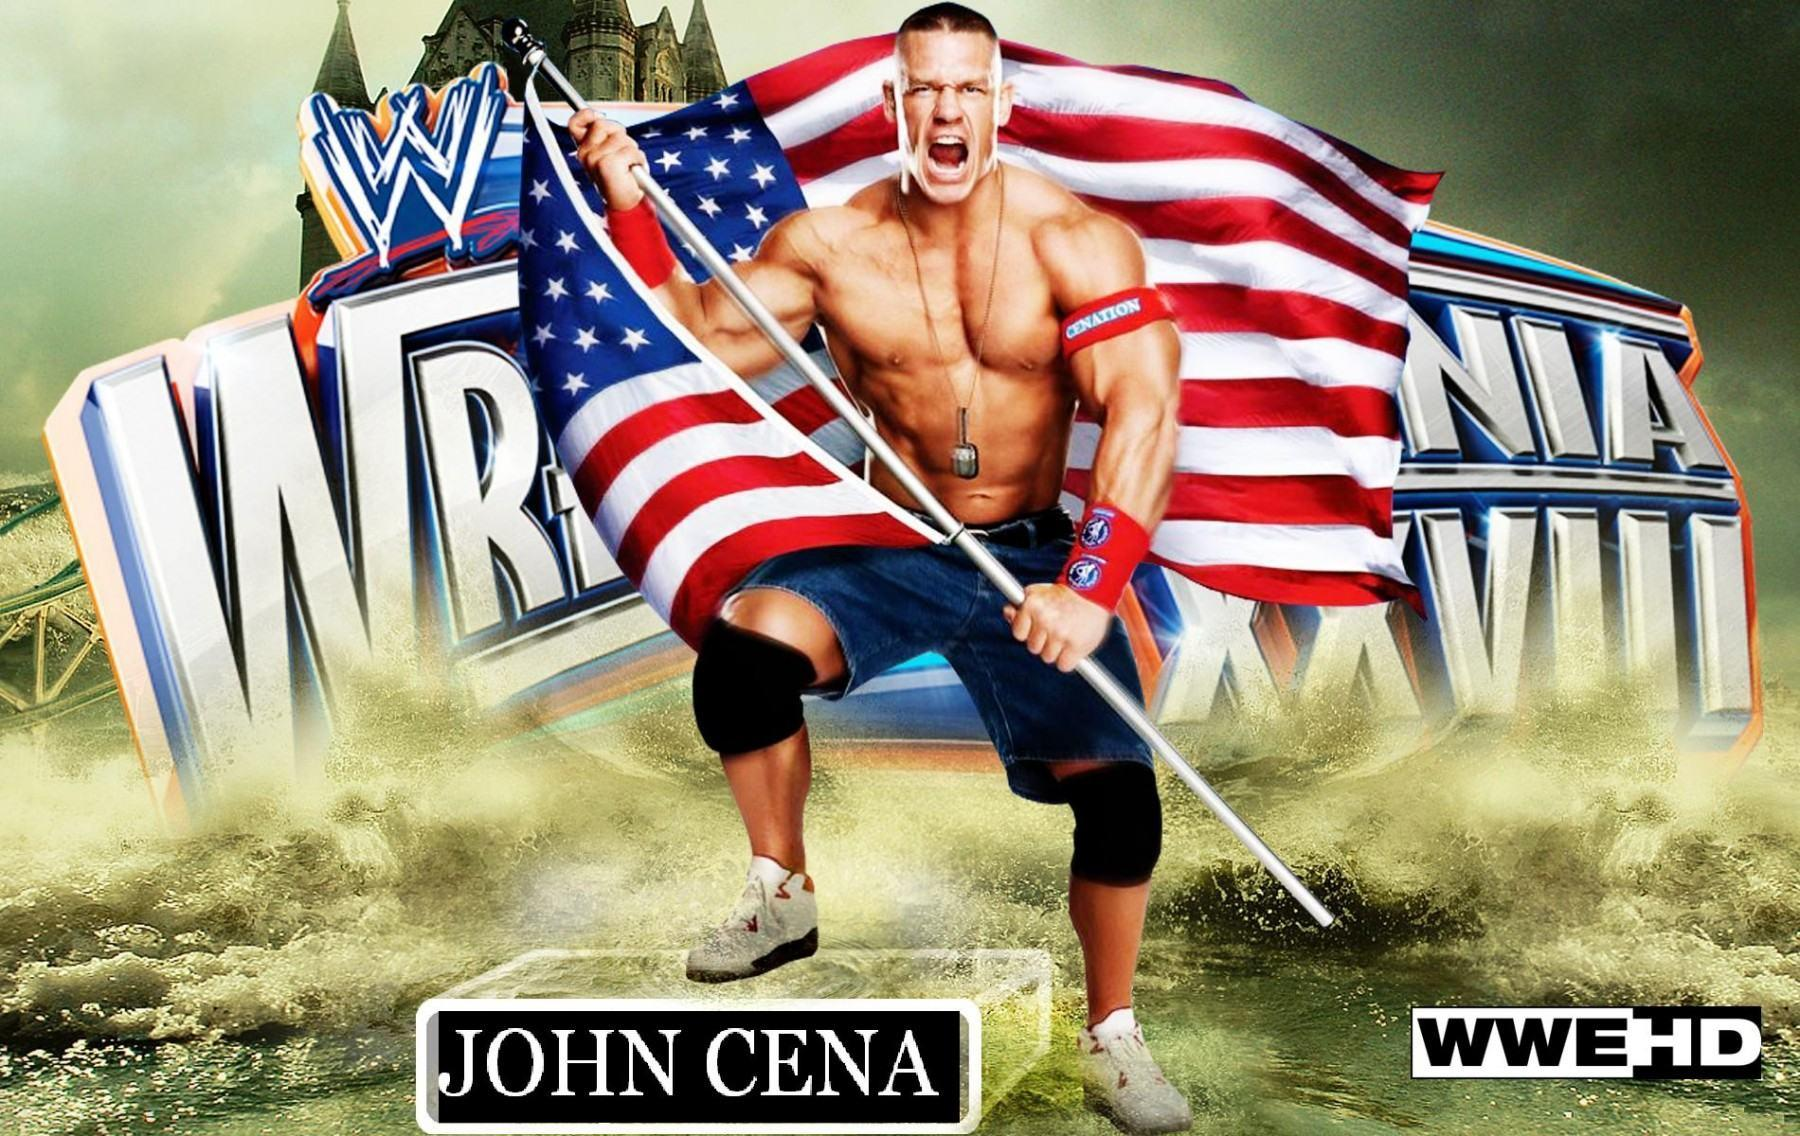 john cena wwe wallpapers hd - wallpaper cave